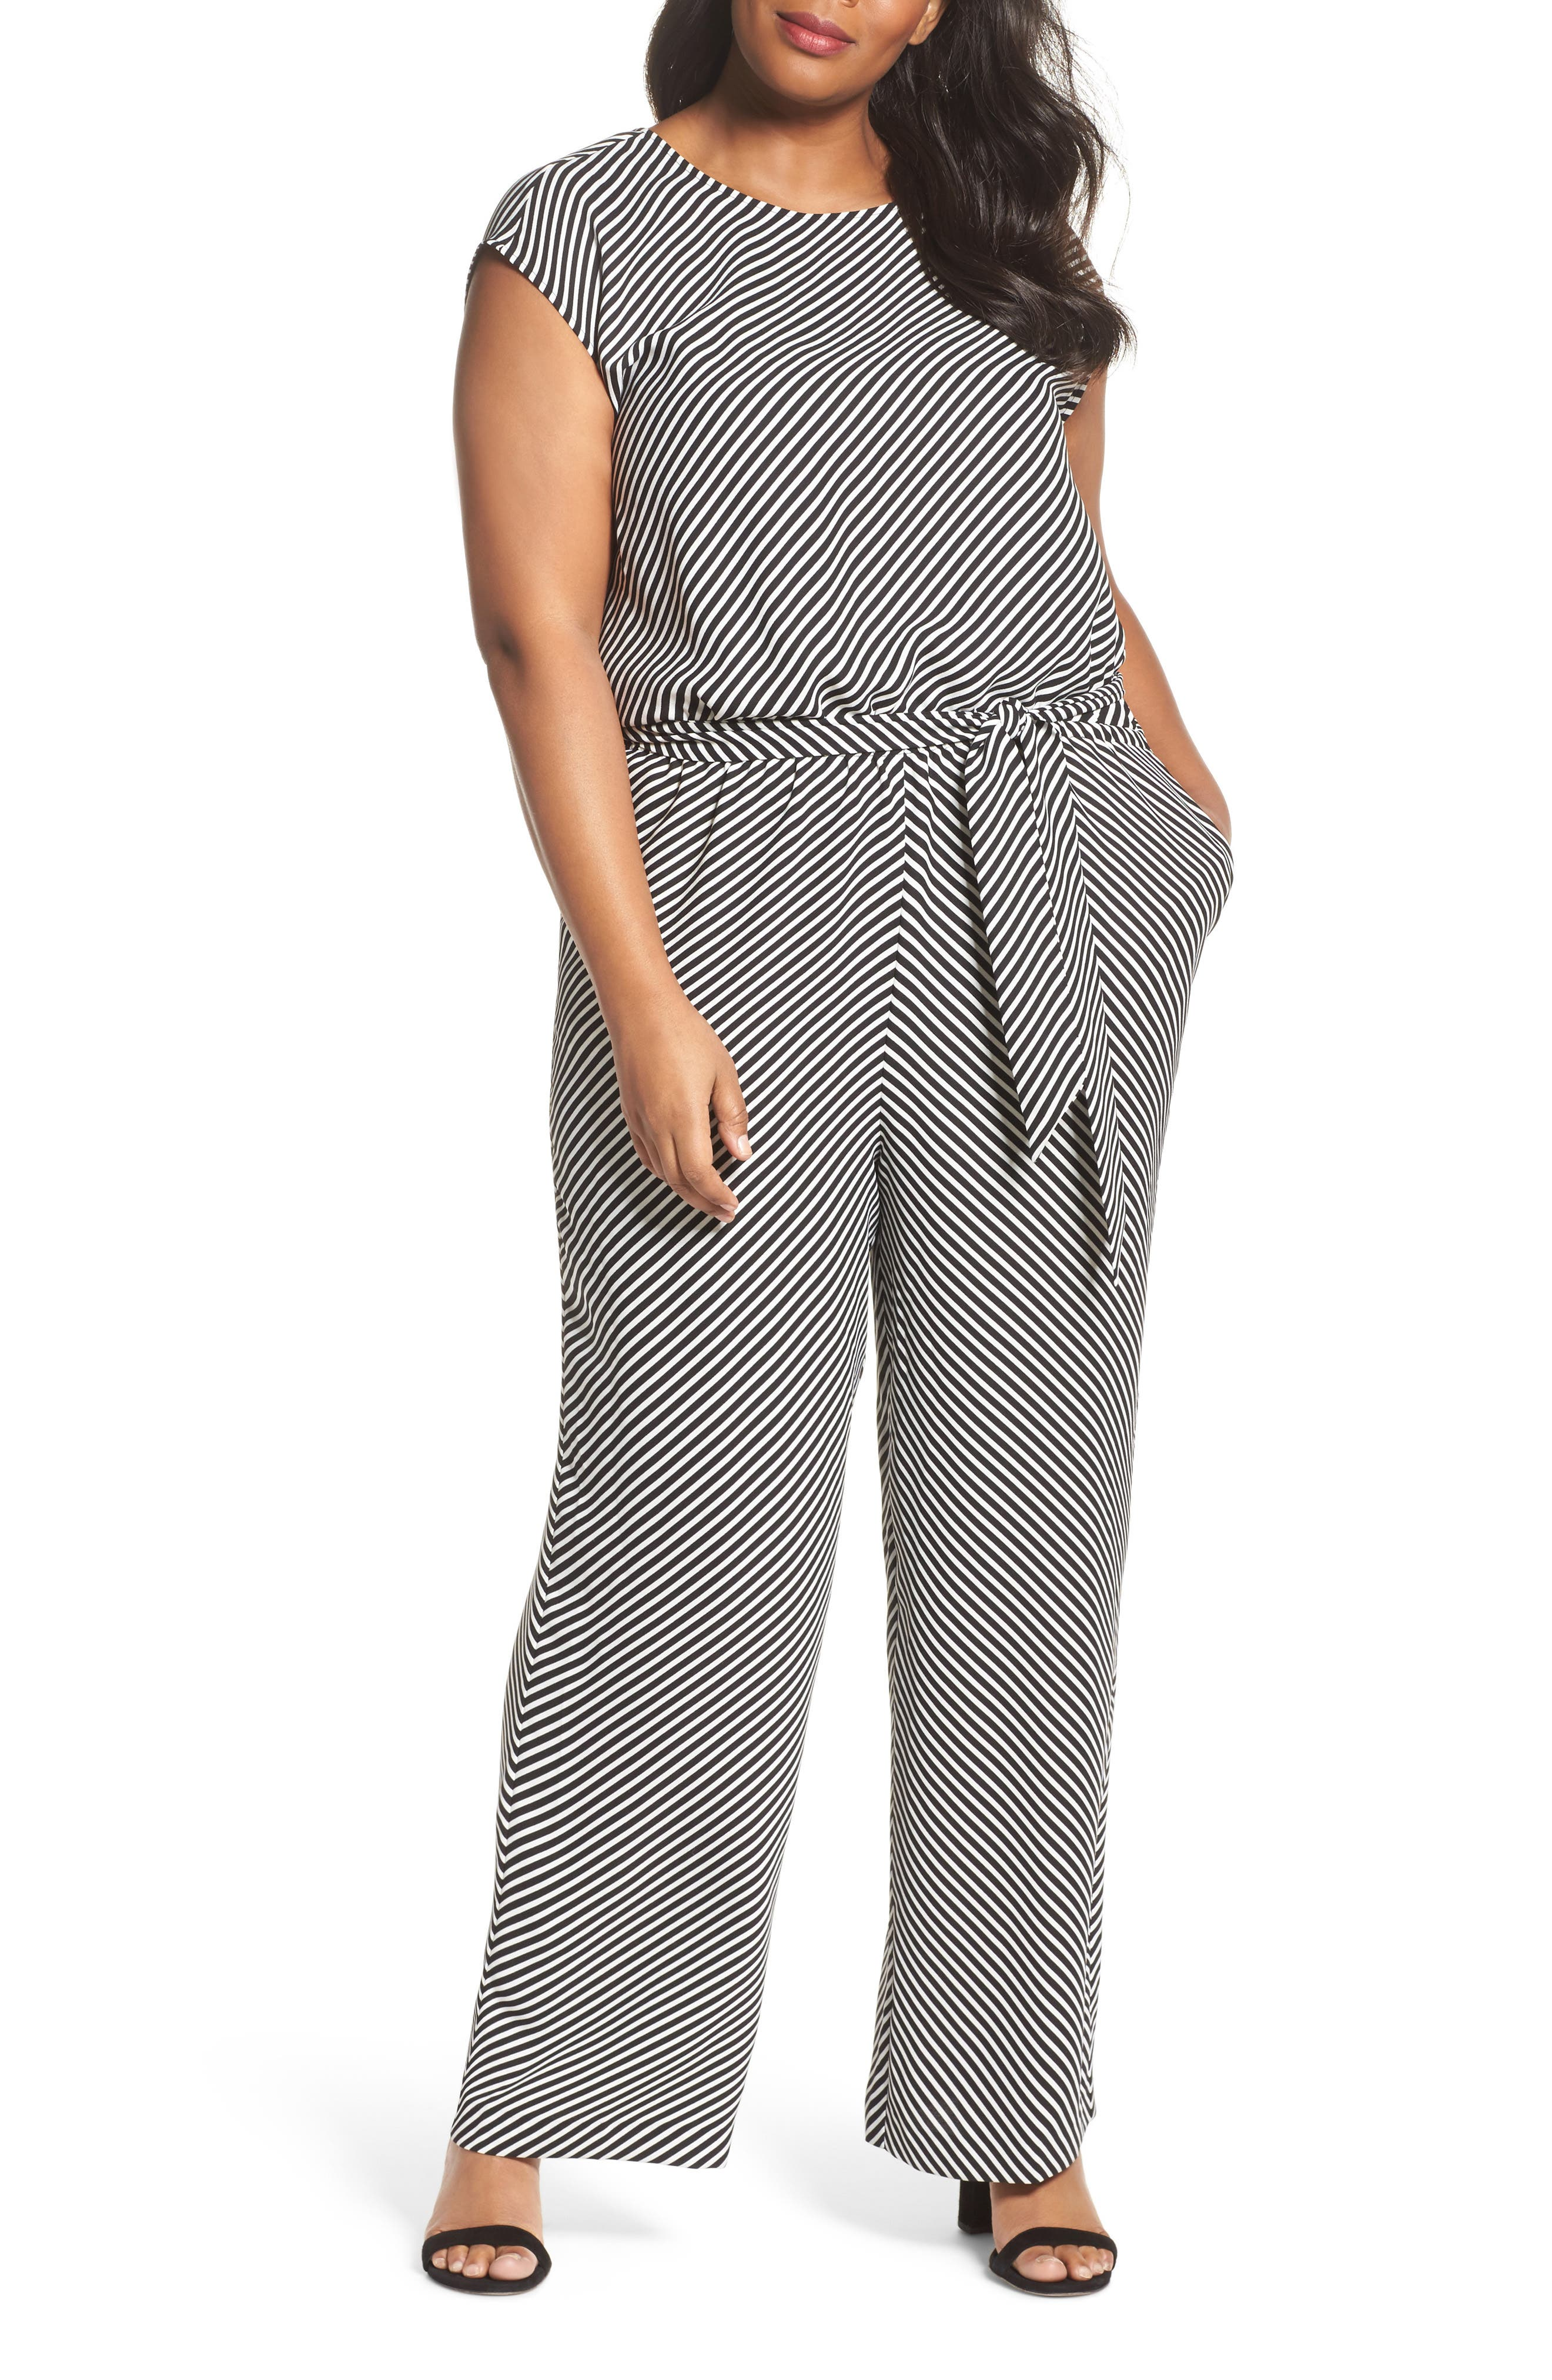 Main Image - Vince Camuto Diagonal Stripe Belted Jumpsuit (Plus Size)